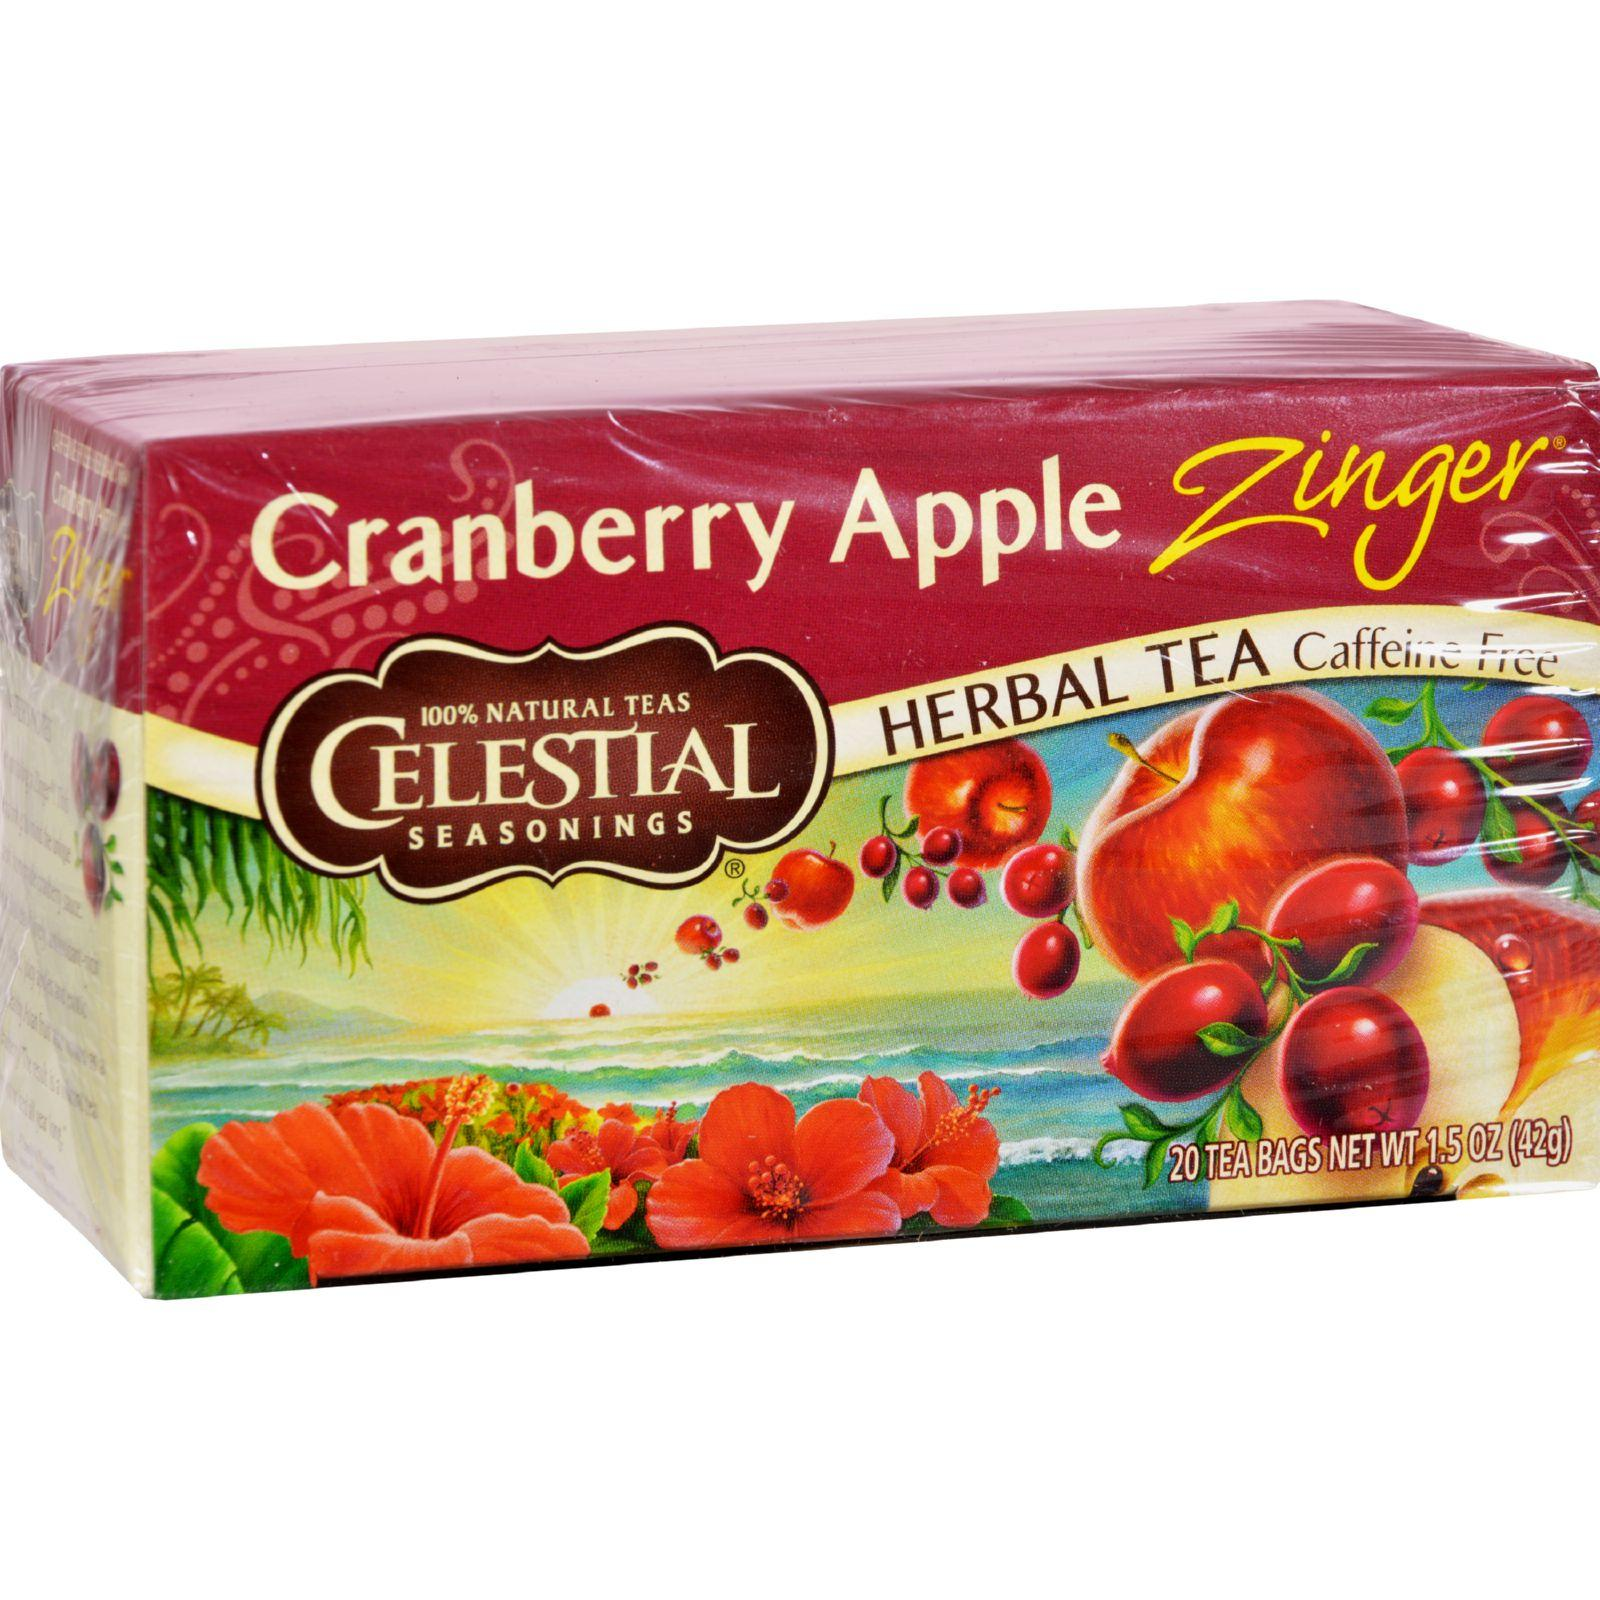 Celestial Seasonings Herbal Tea Caffeine Free Cranberry Apple Zinger - 20 Tea Bags - Case Of 6